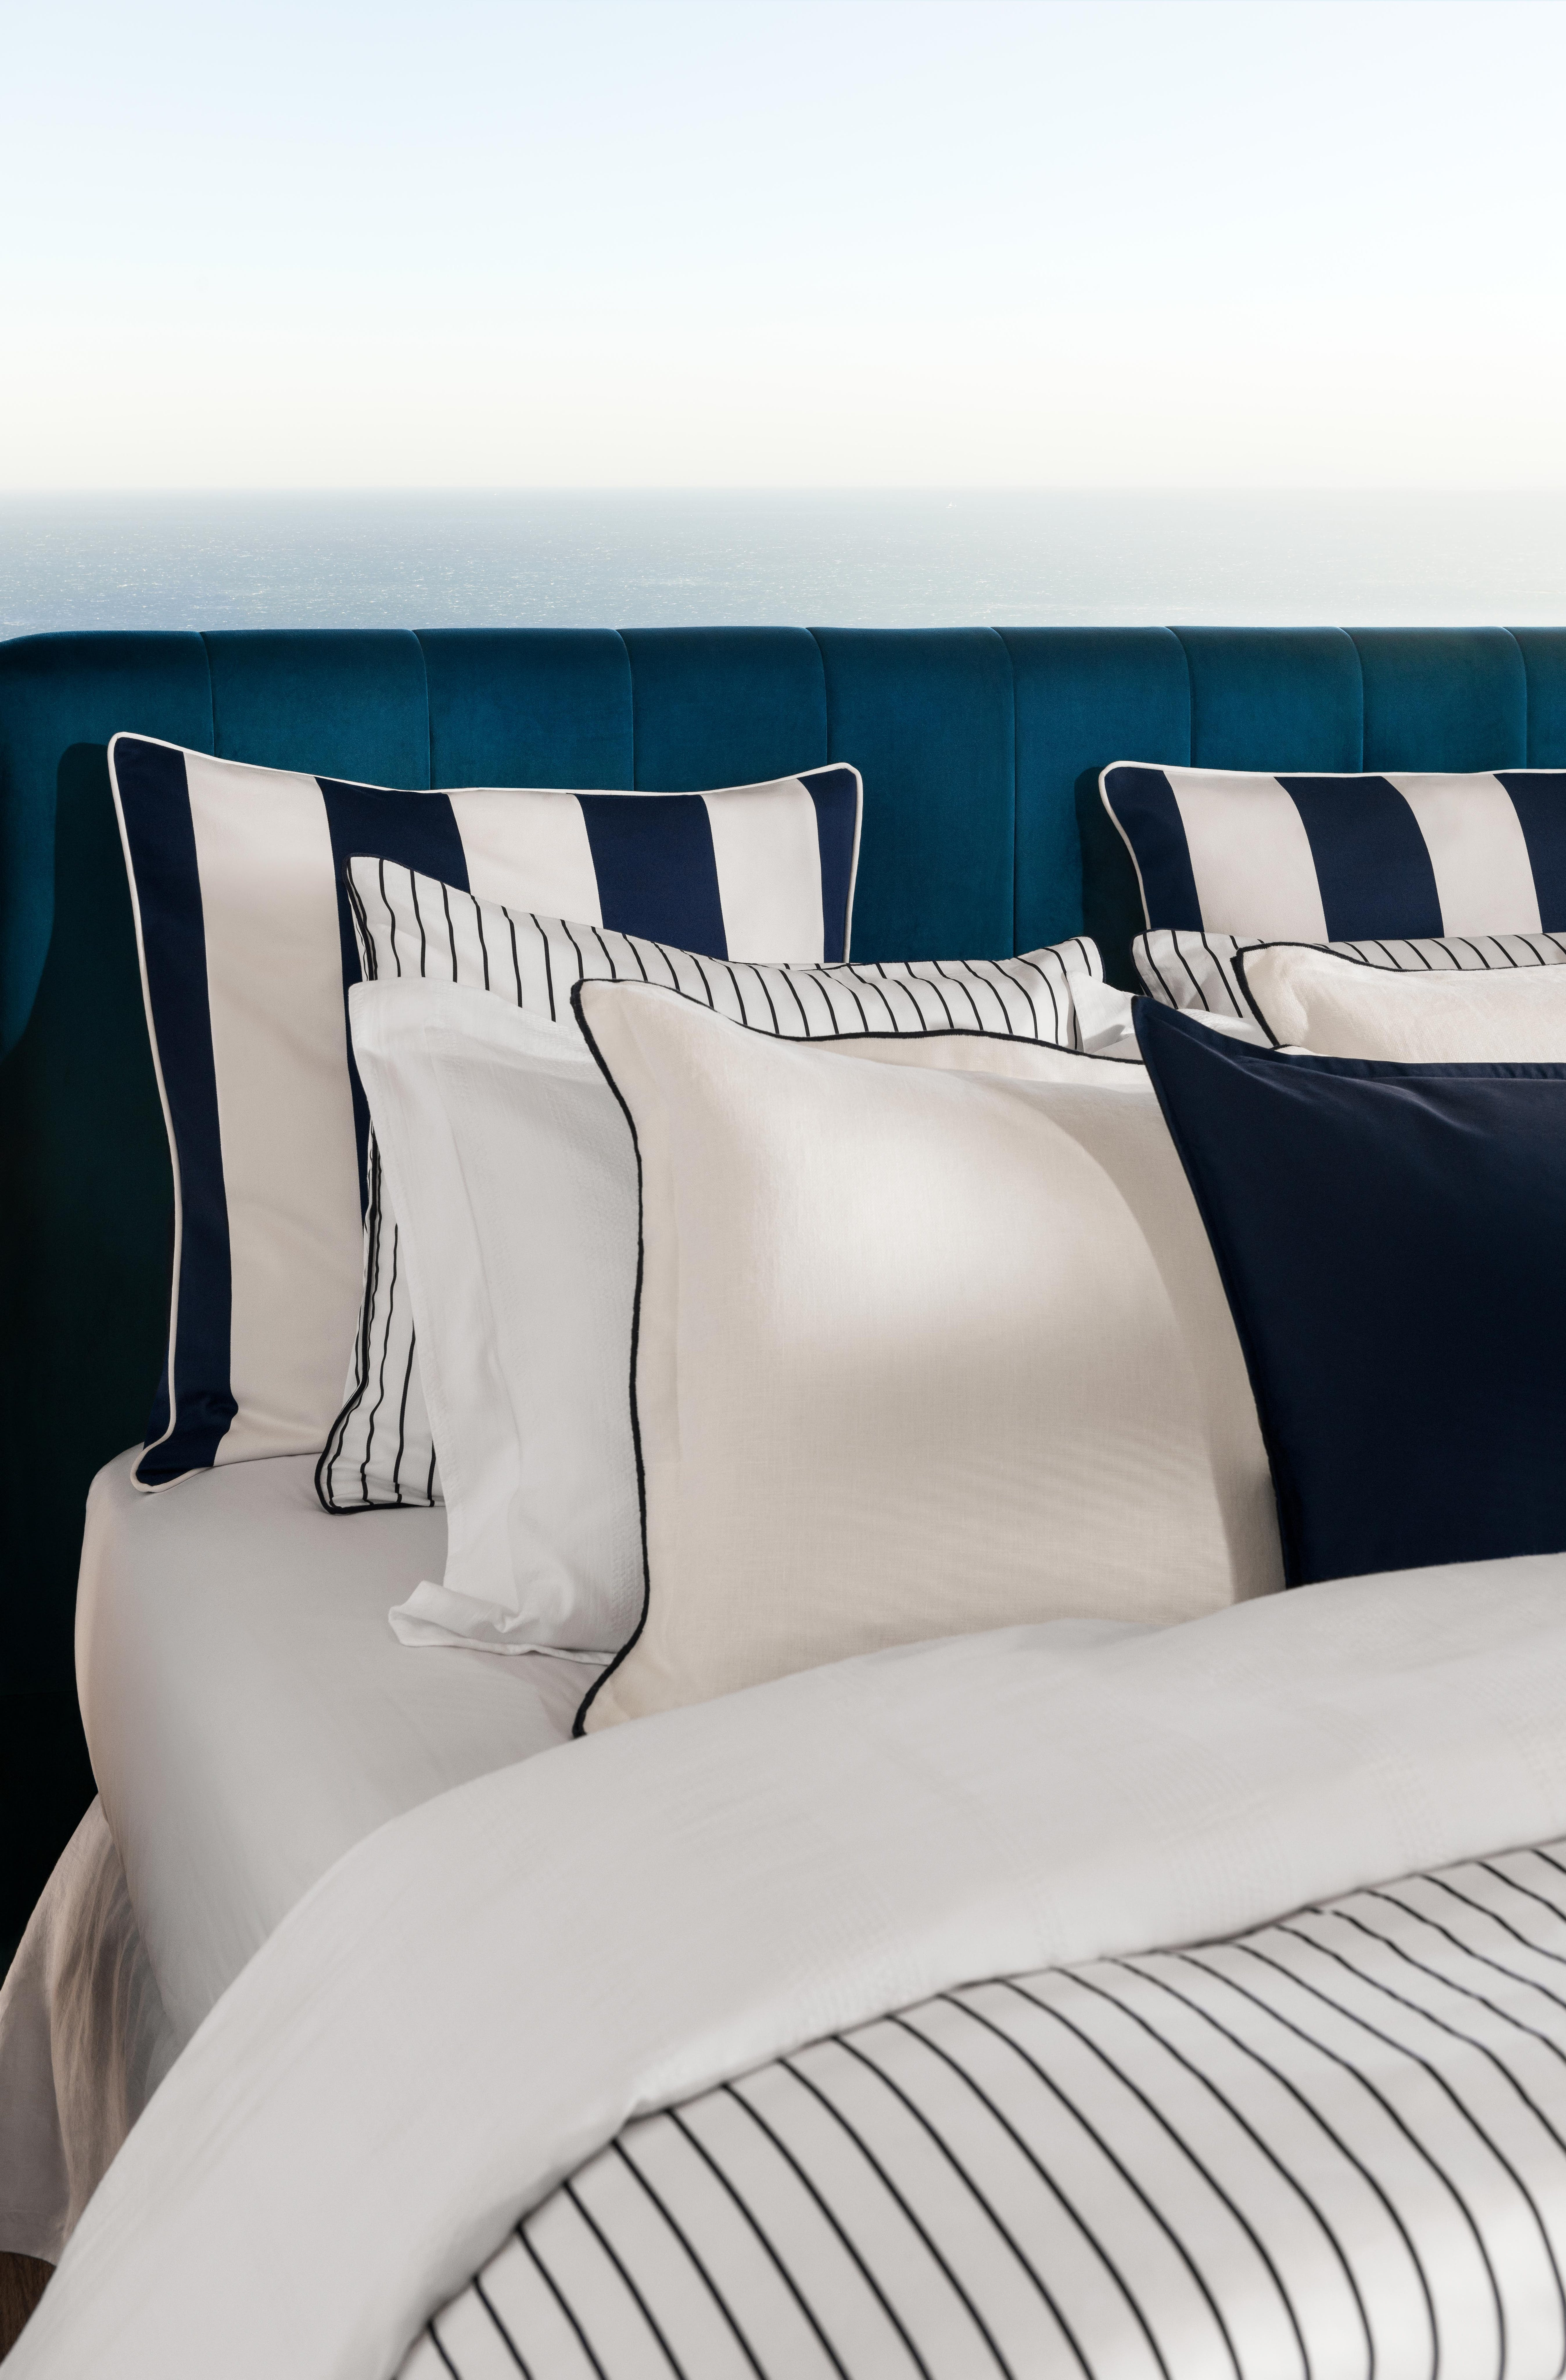 H&M HOME's Classic Collection